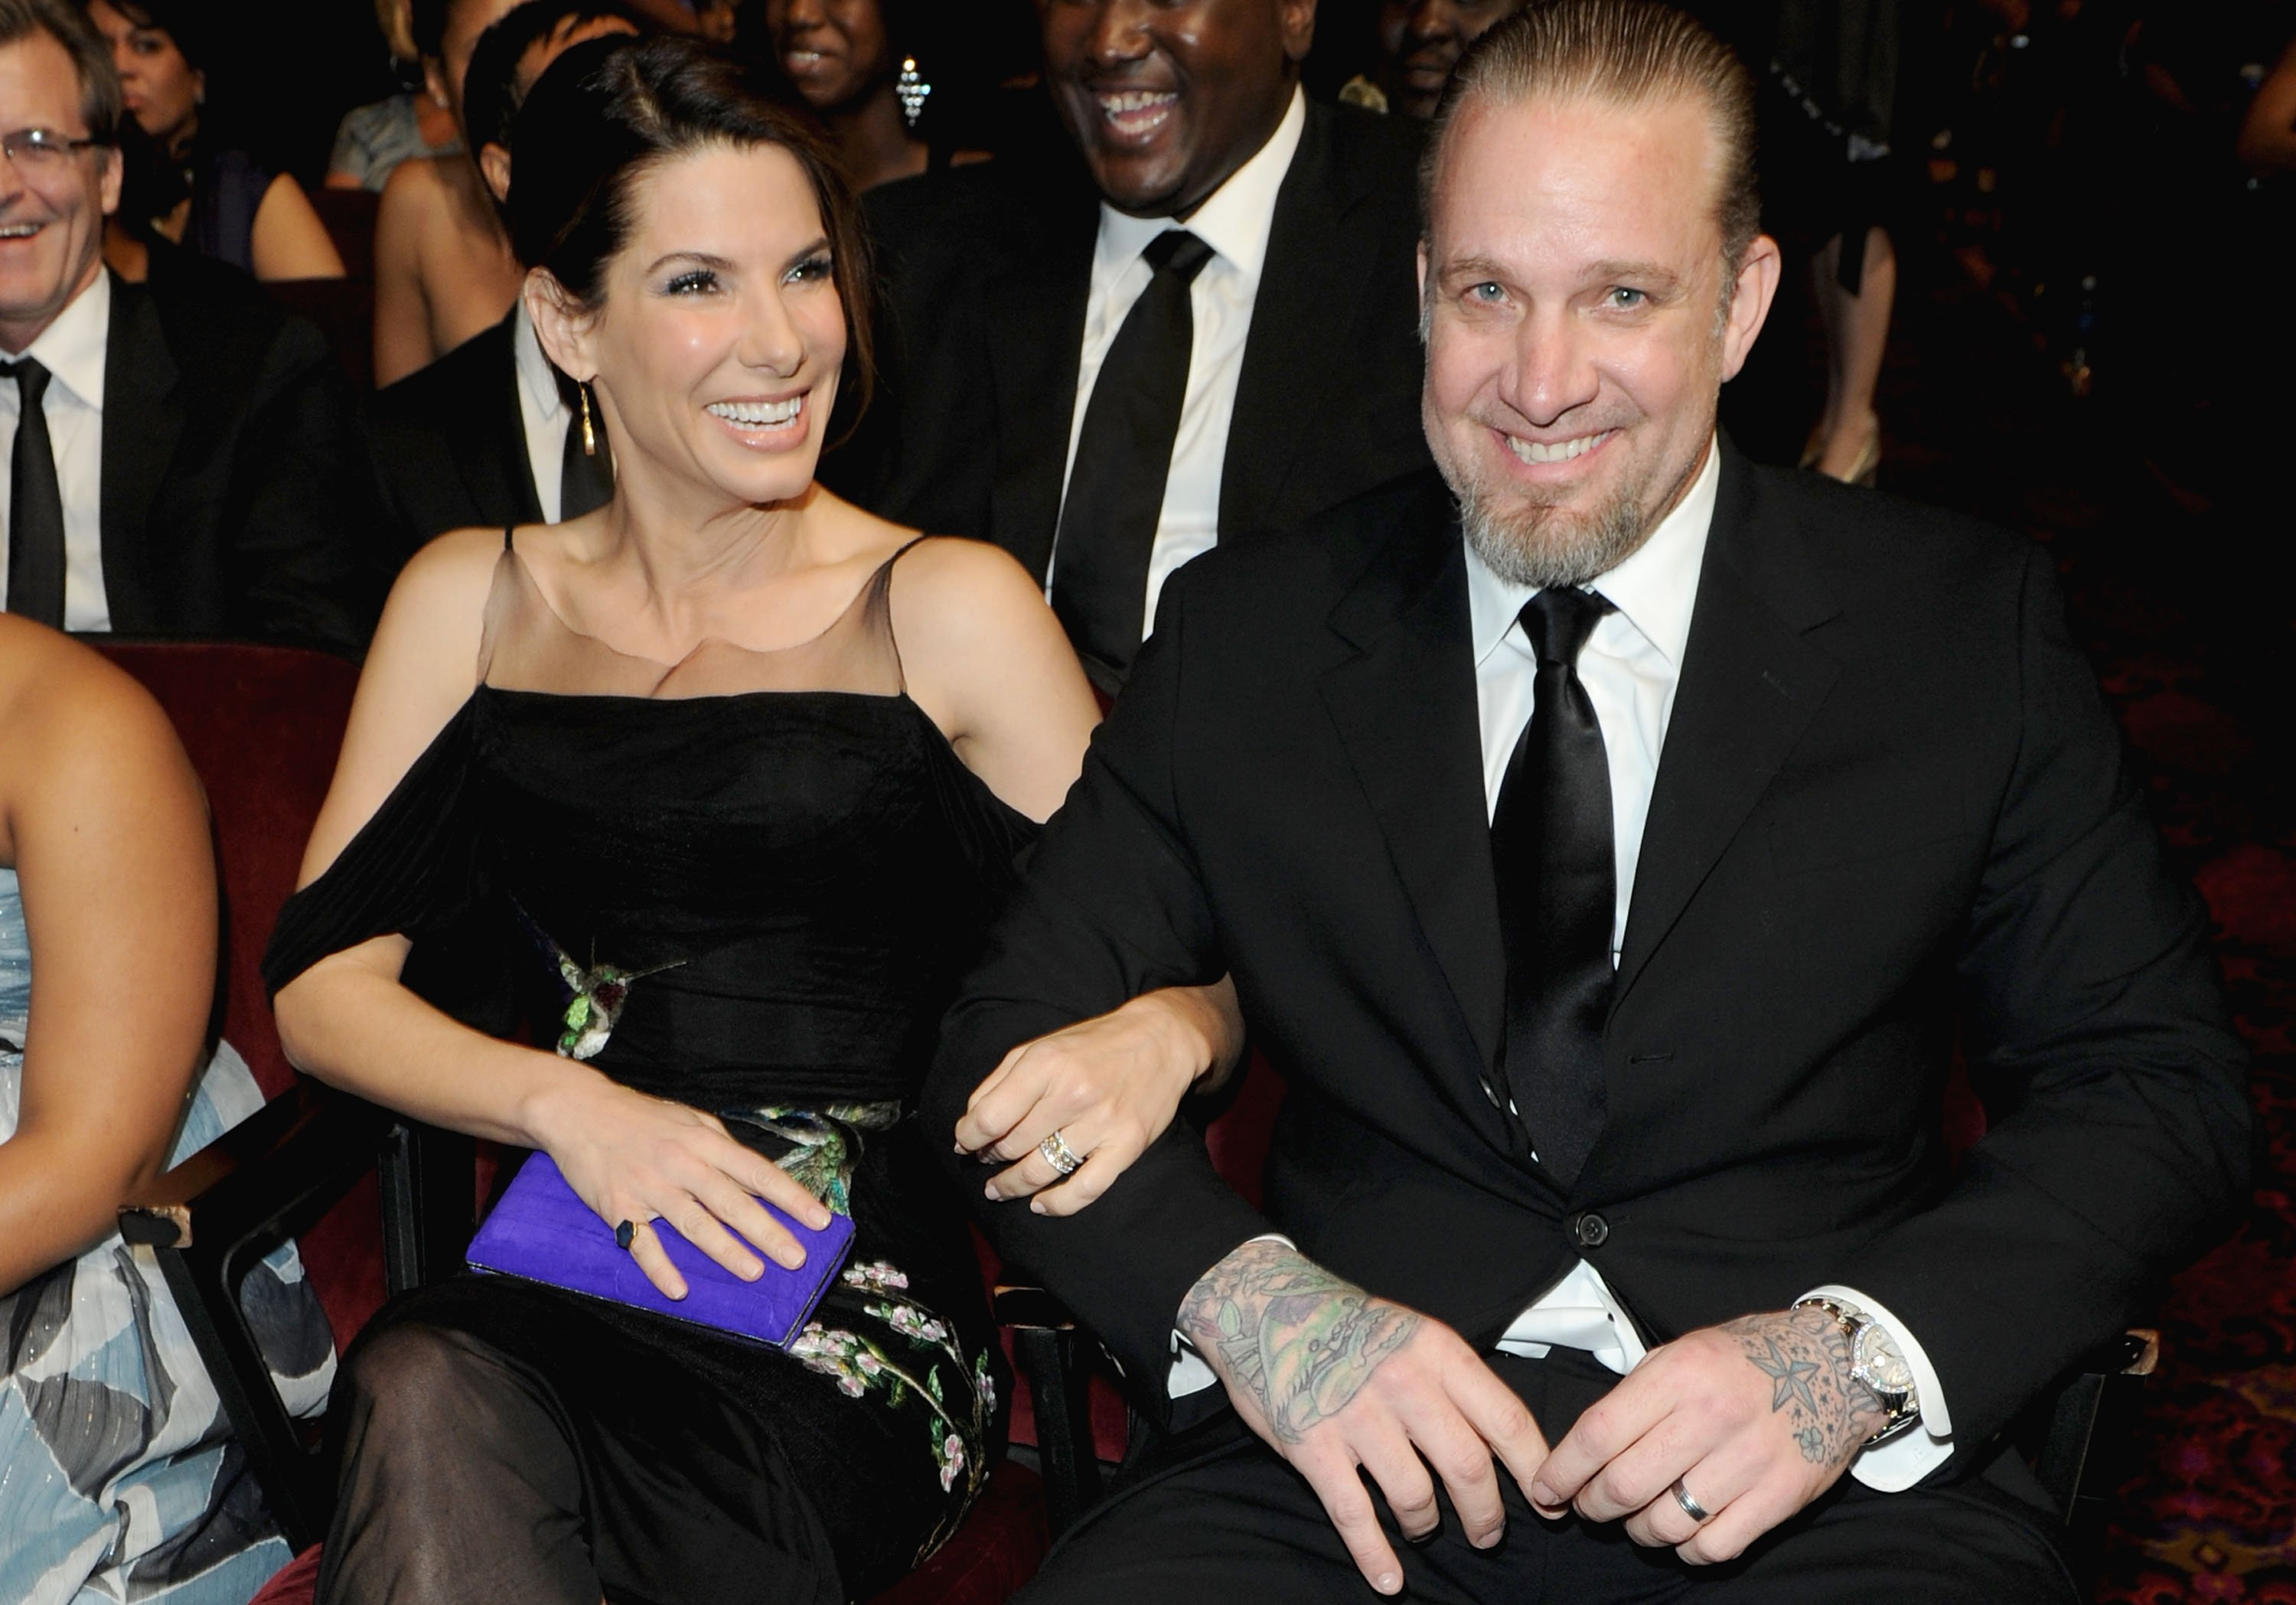 Image Credits: Getty Images / Jason Merritt | Actress Sandra Bullock and husband Jesse James in the audience during the 41st NAACP Image awards held at The Shrine Auditorium on February 26, 2010 in Los Angeles, California.